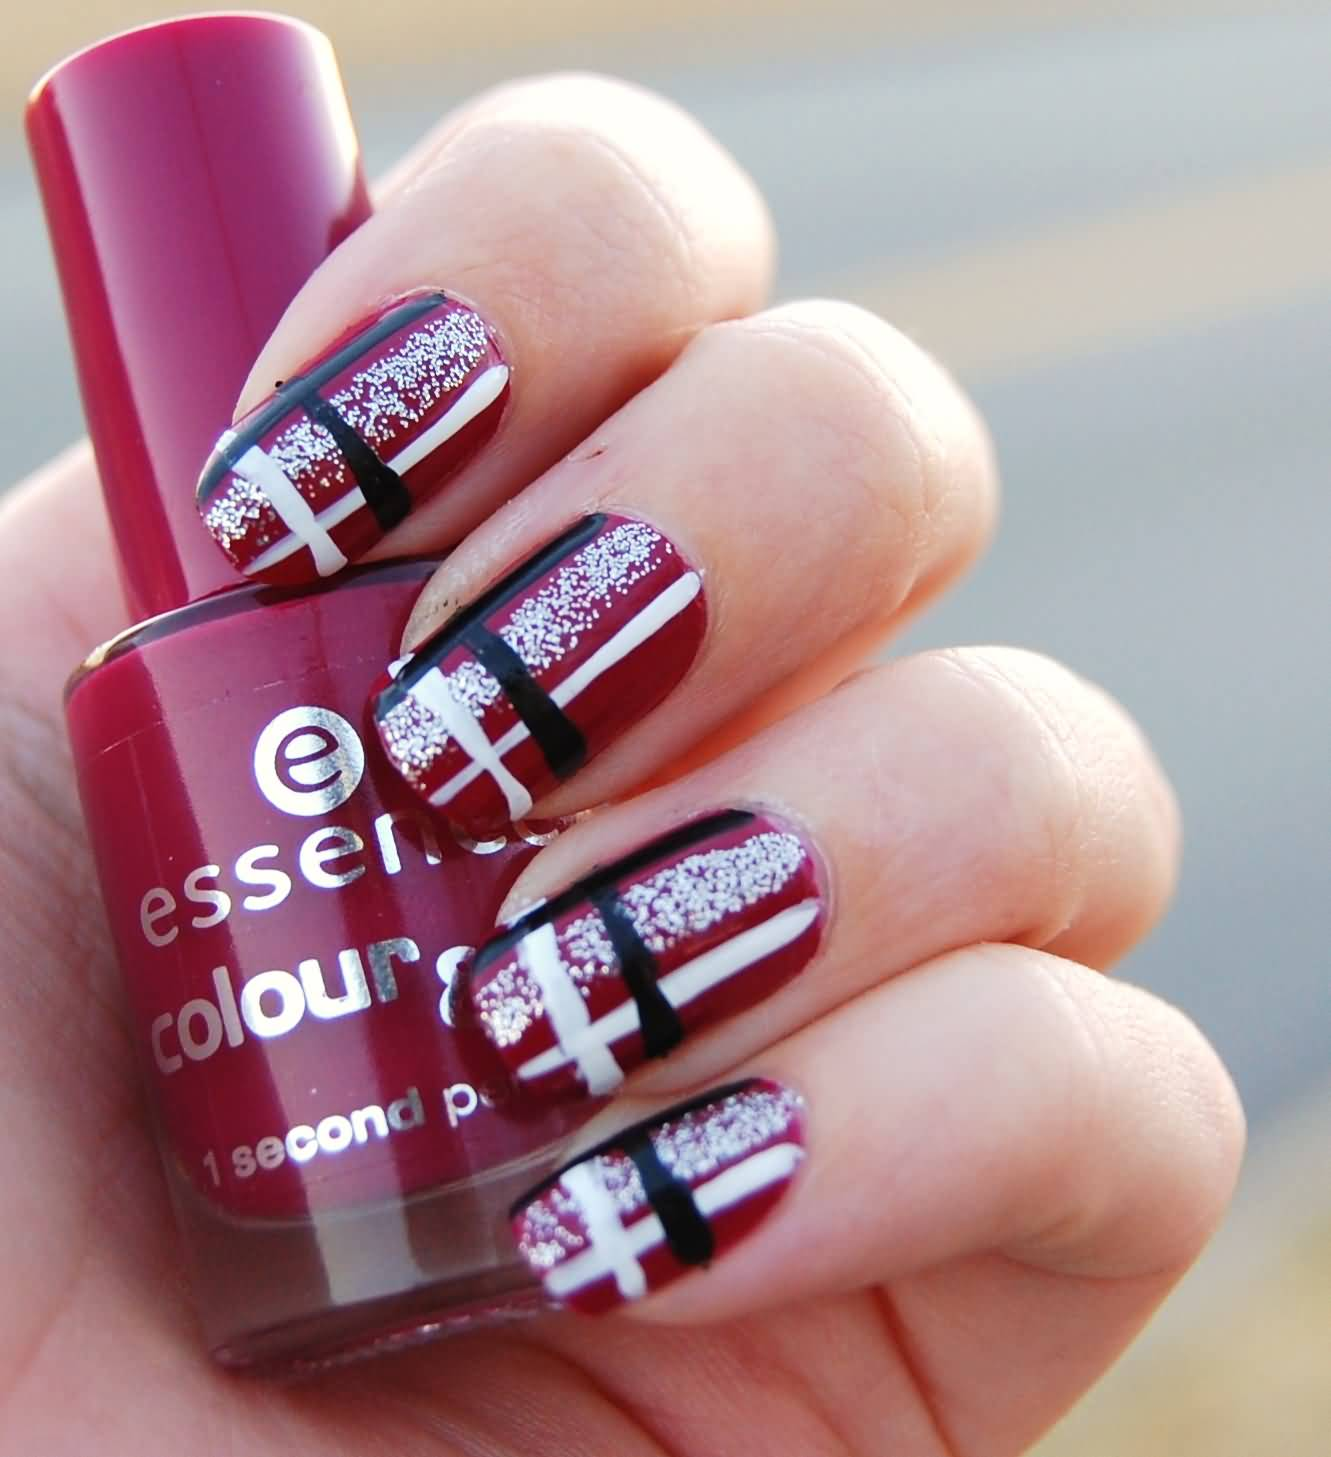 Red Base Nails With Black And White Plaid Nail Art